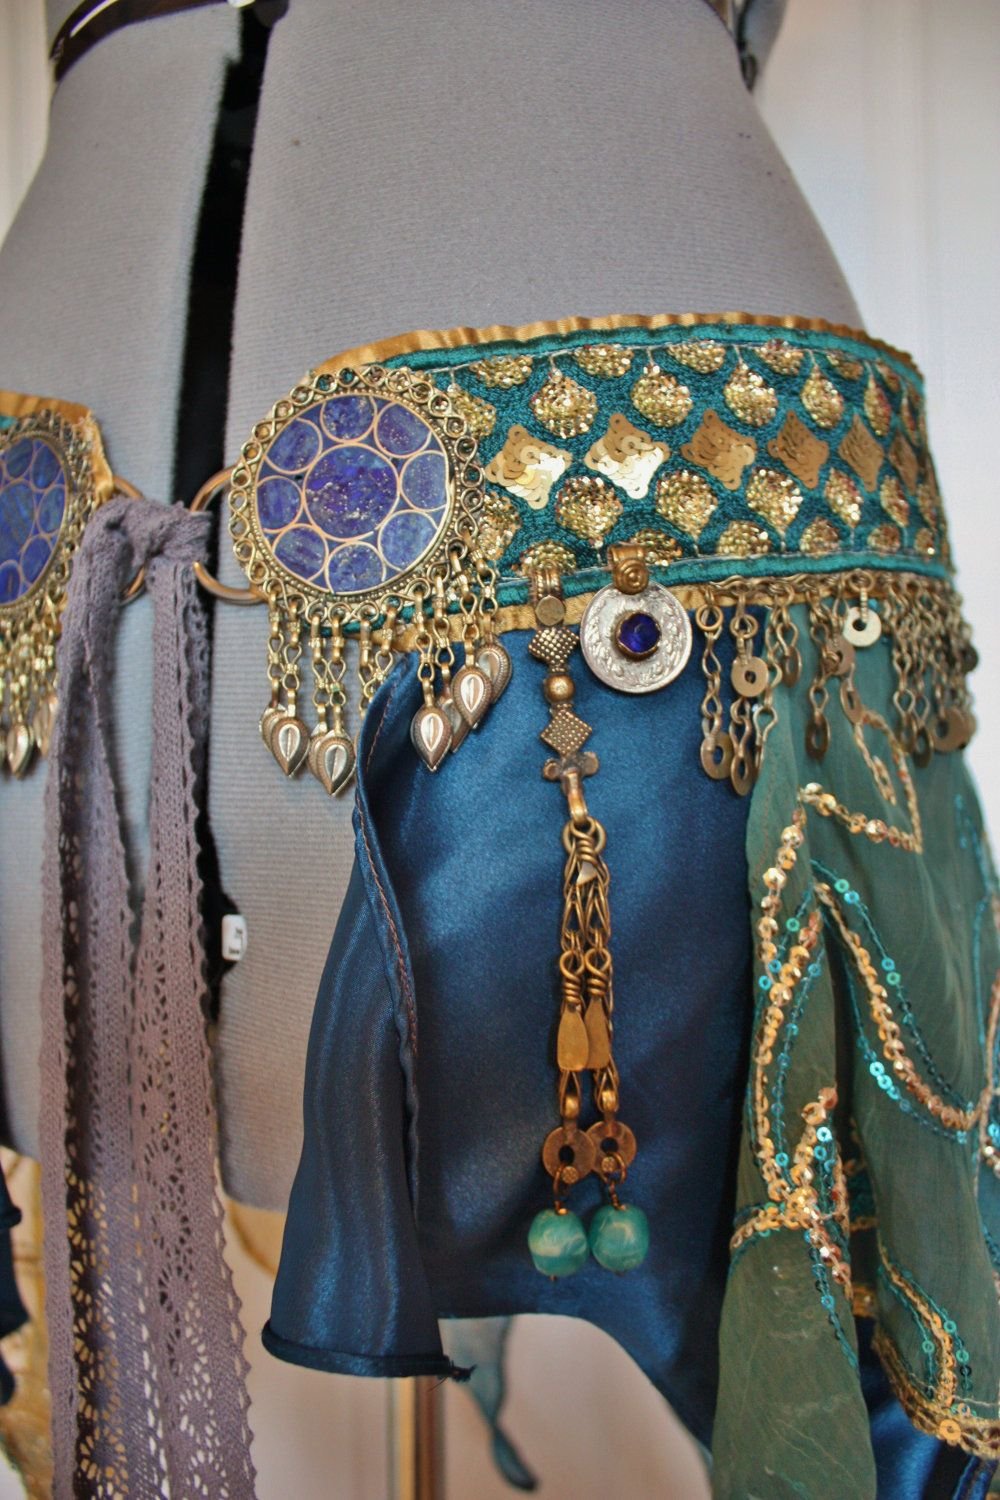 Belly Dancing, Arabian or Middle Eastern Inspiration for